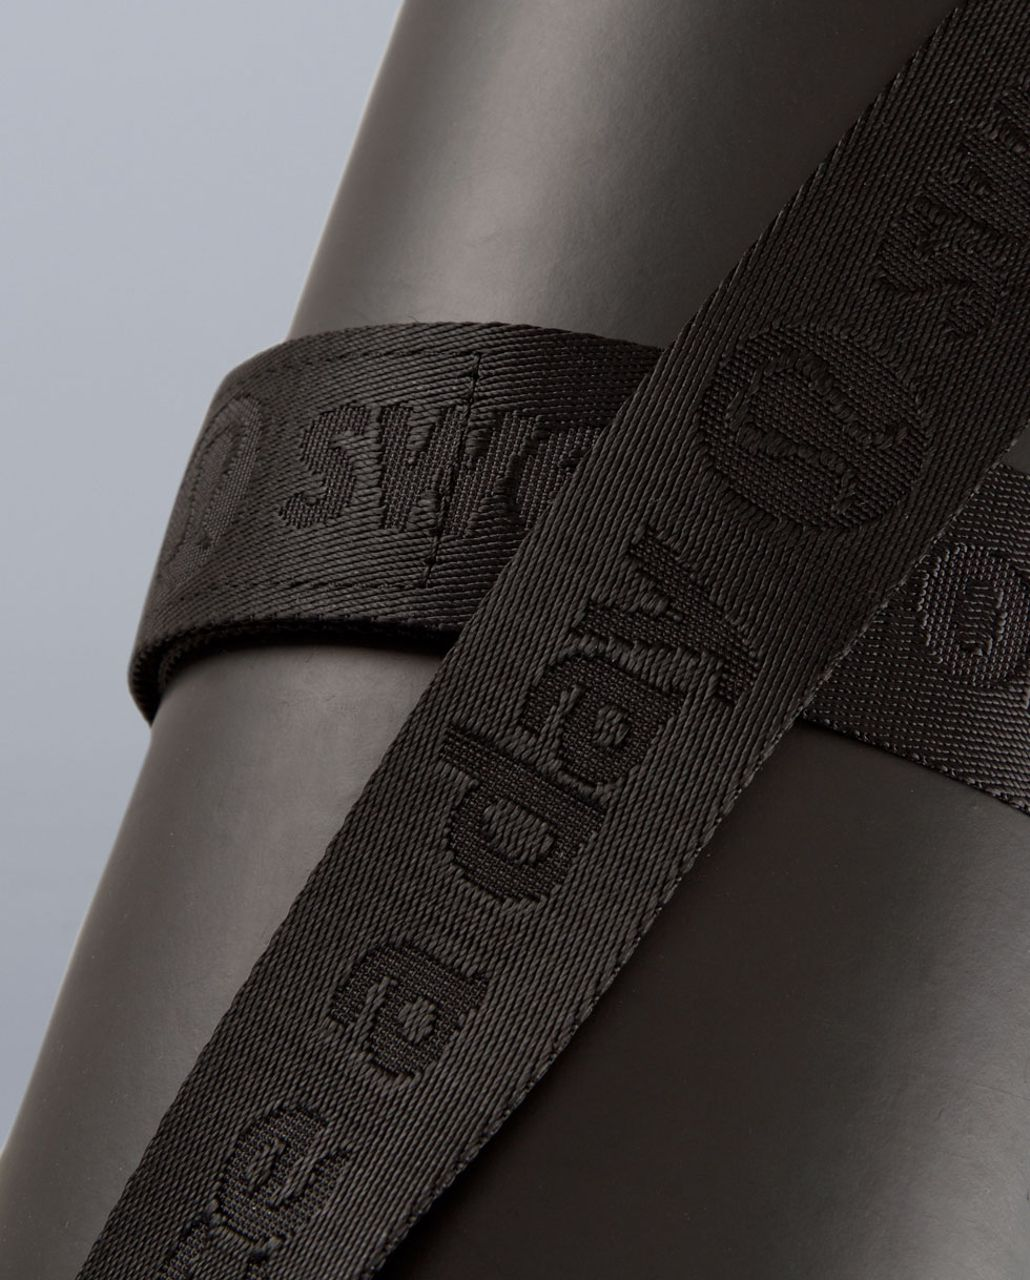 Lululemon No-Brainer Mat Strap - Black (First Release)